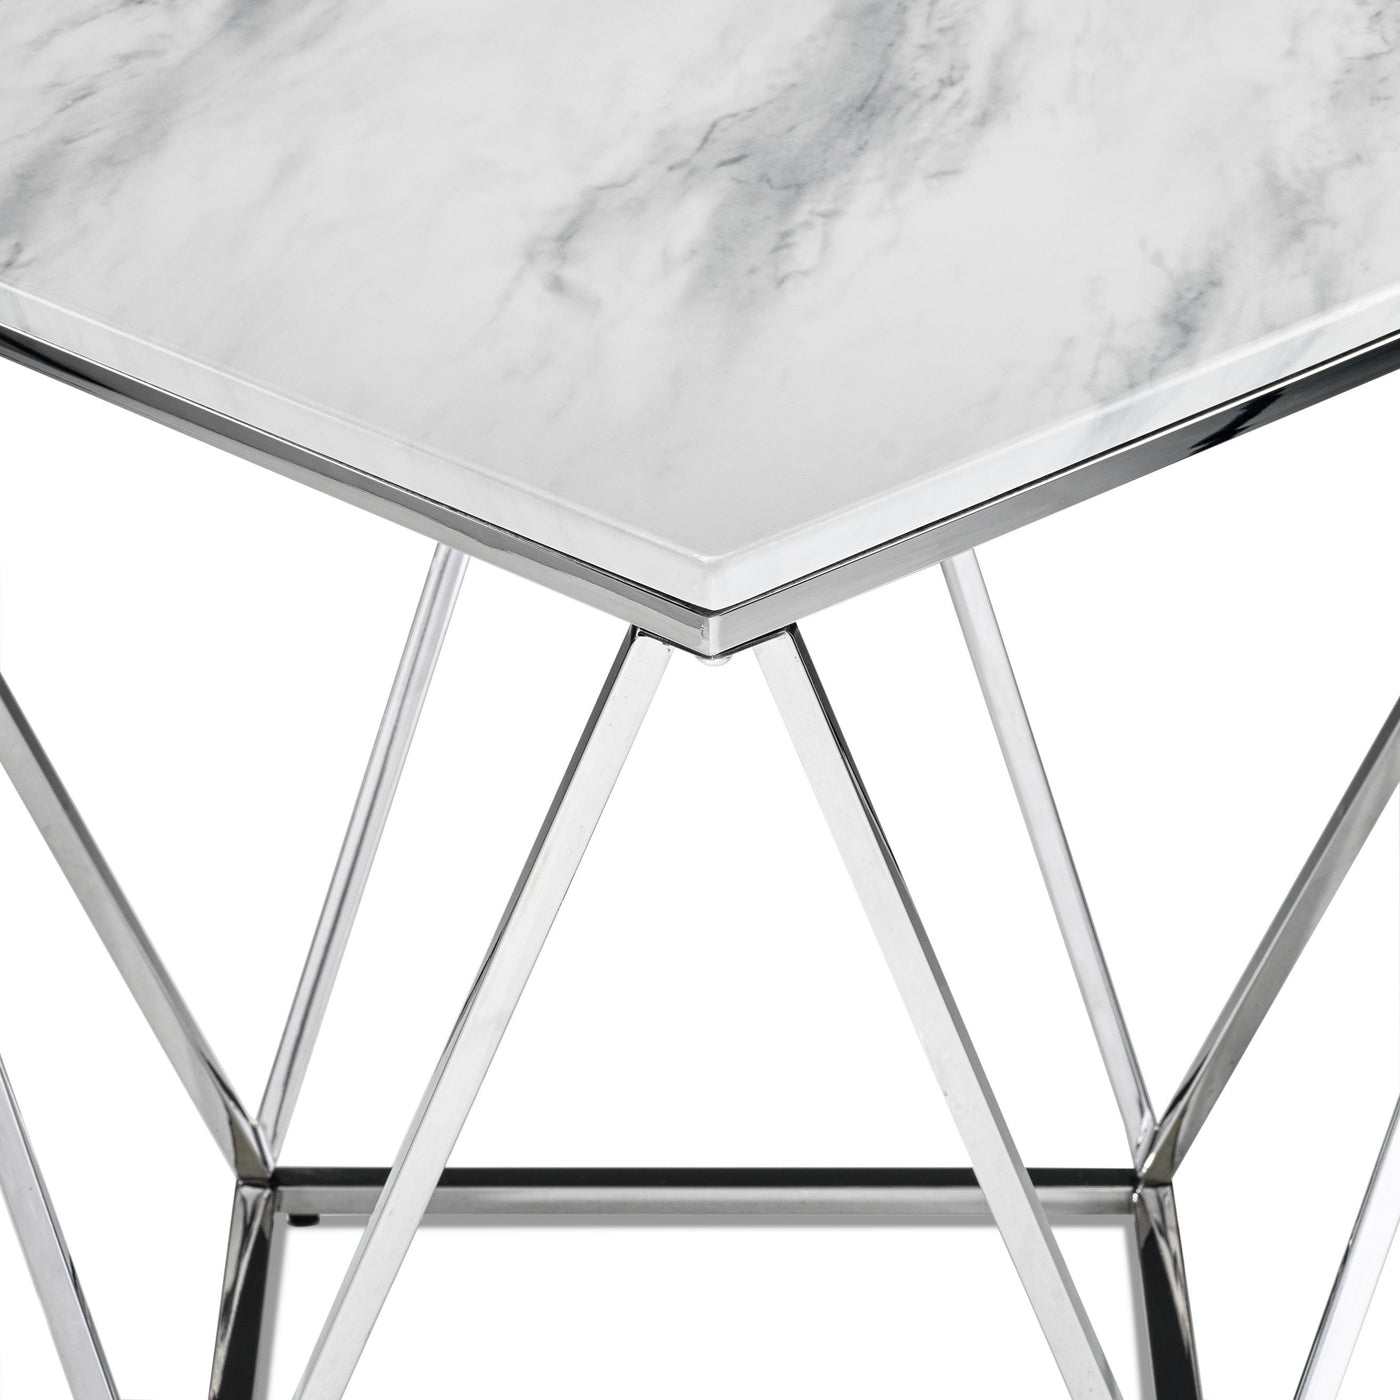 Prime Lynn Coffee Table Marble And Stainless Steel Machost Co Dining Chair Design Ideas Machostcouk